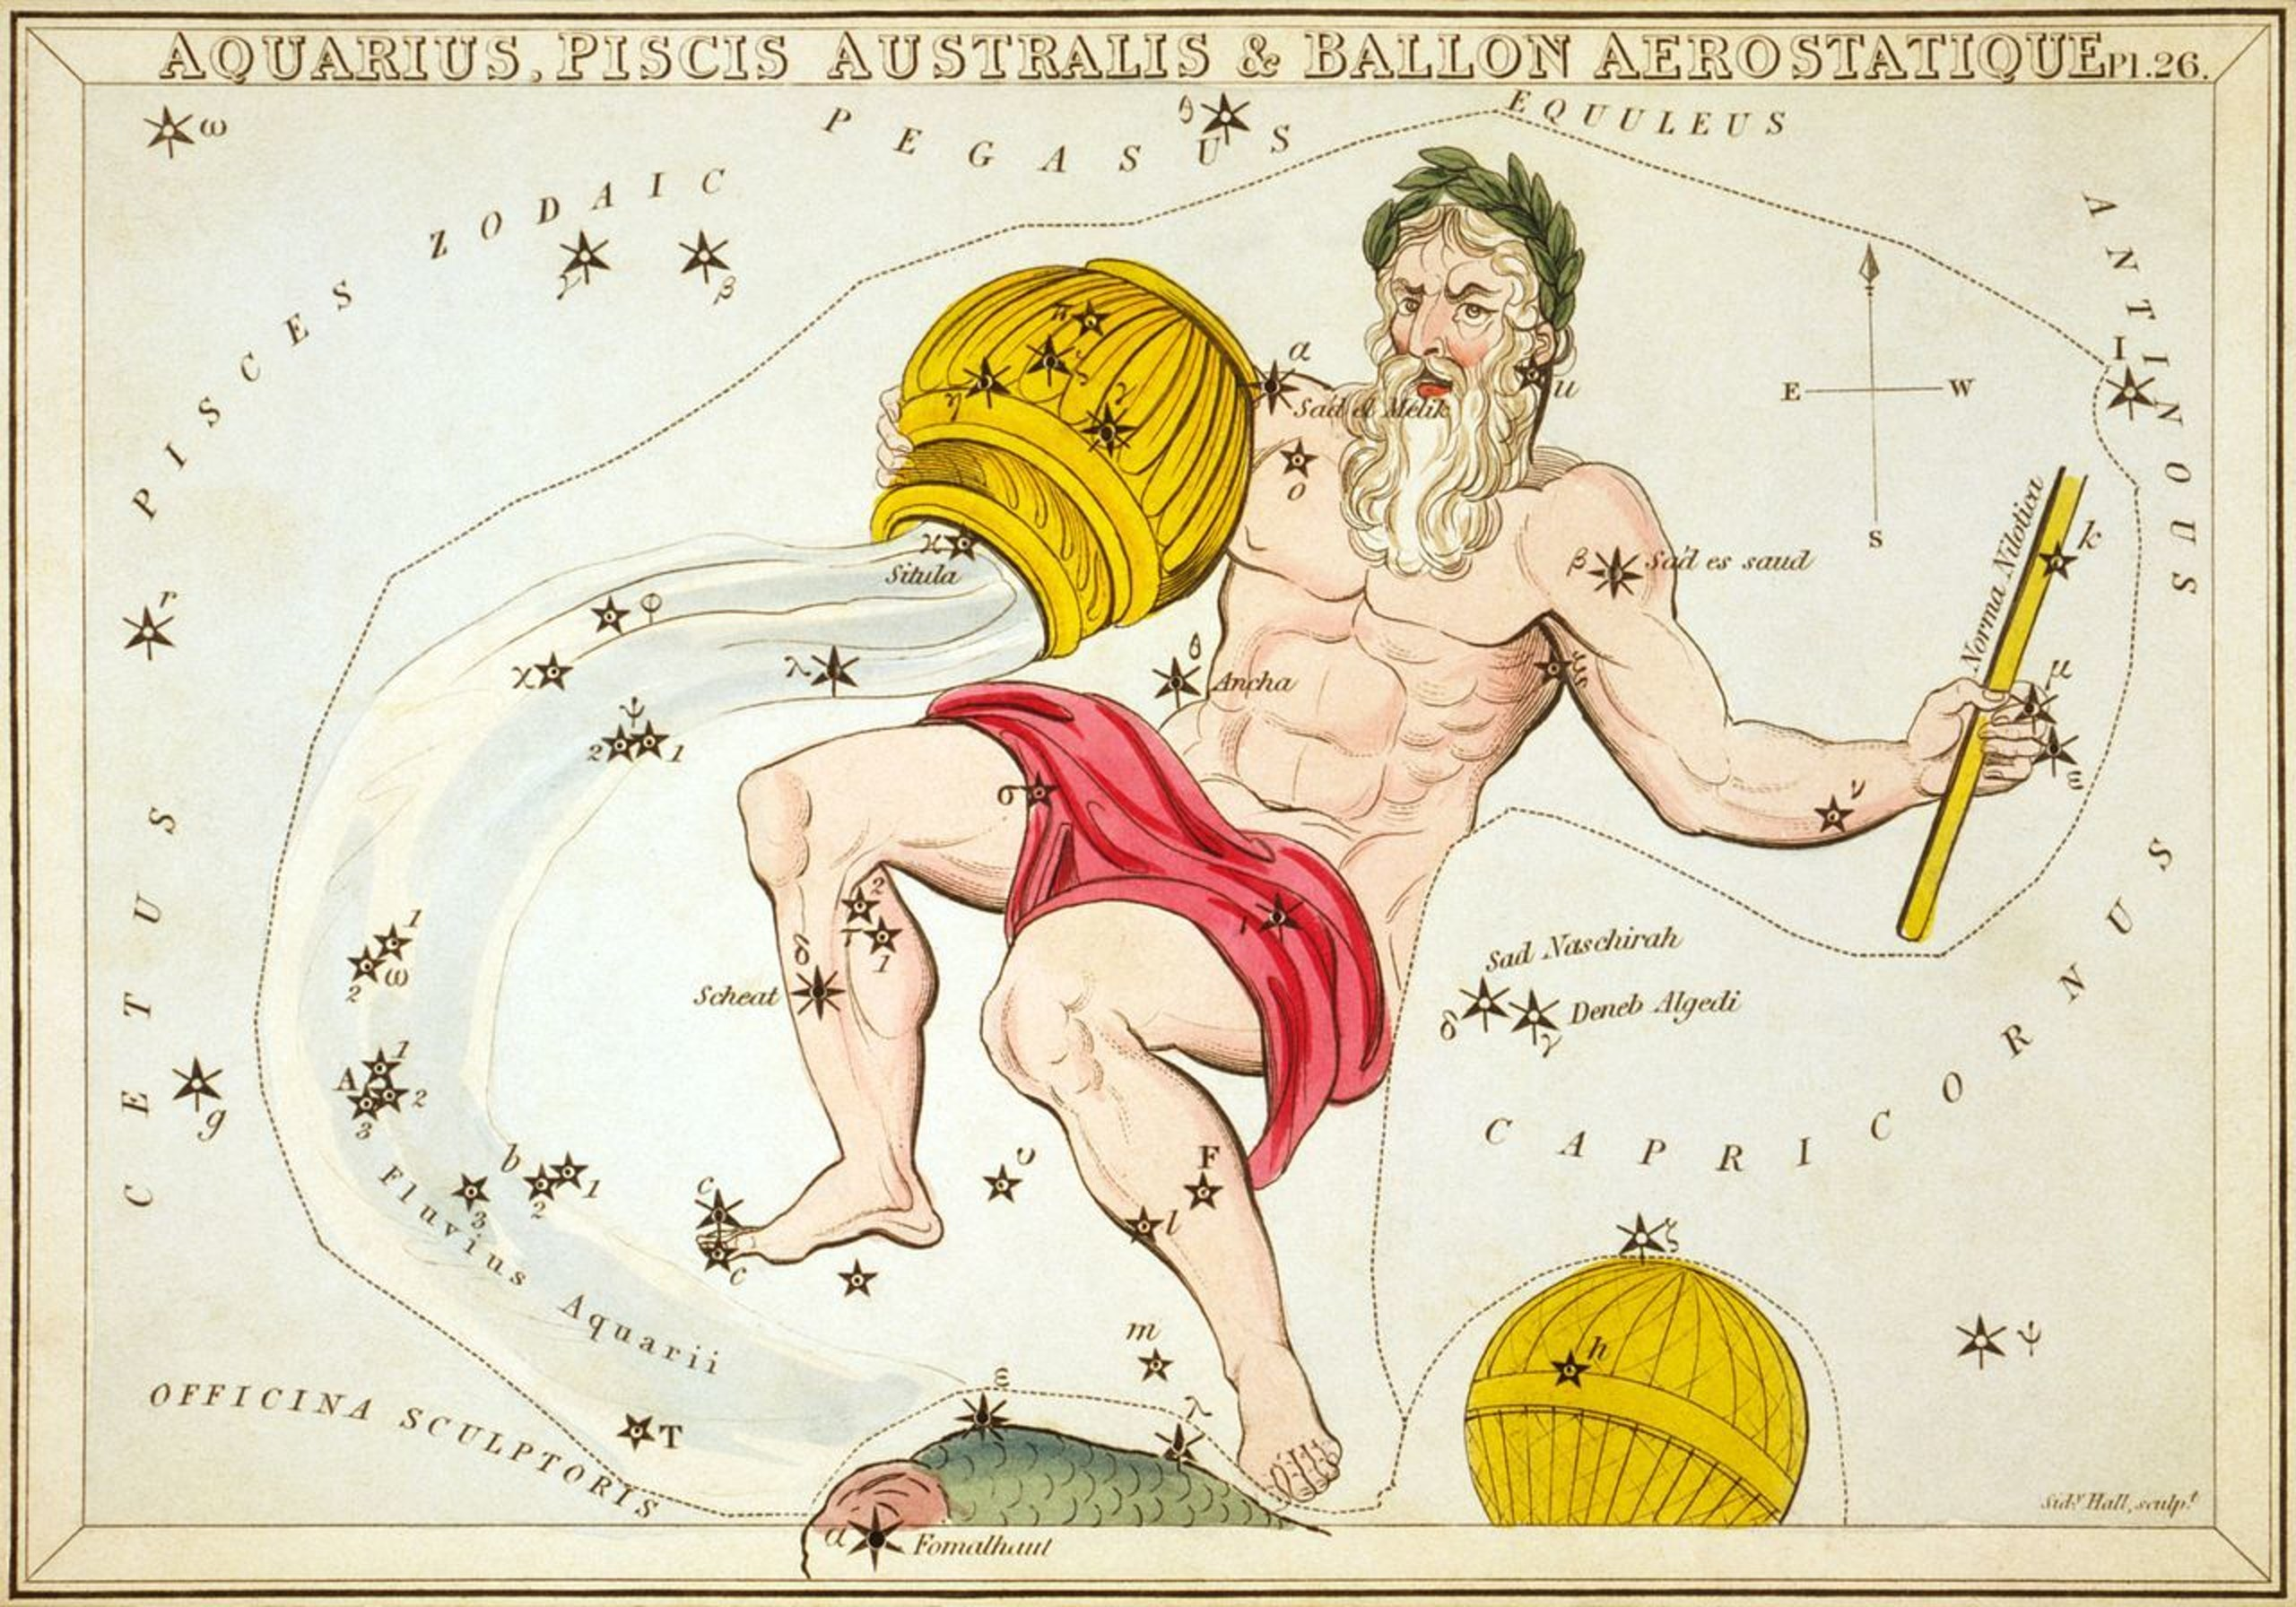 A representation of Aquarius printed in 1825 as part of Urania's Mirror, (including a now-obsolete constellation, Ballon Aerostatique south of it).